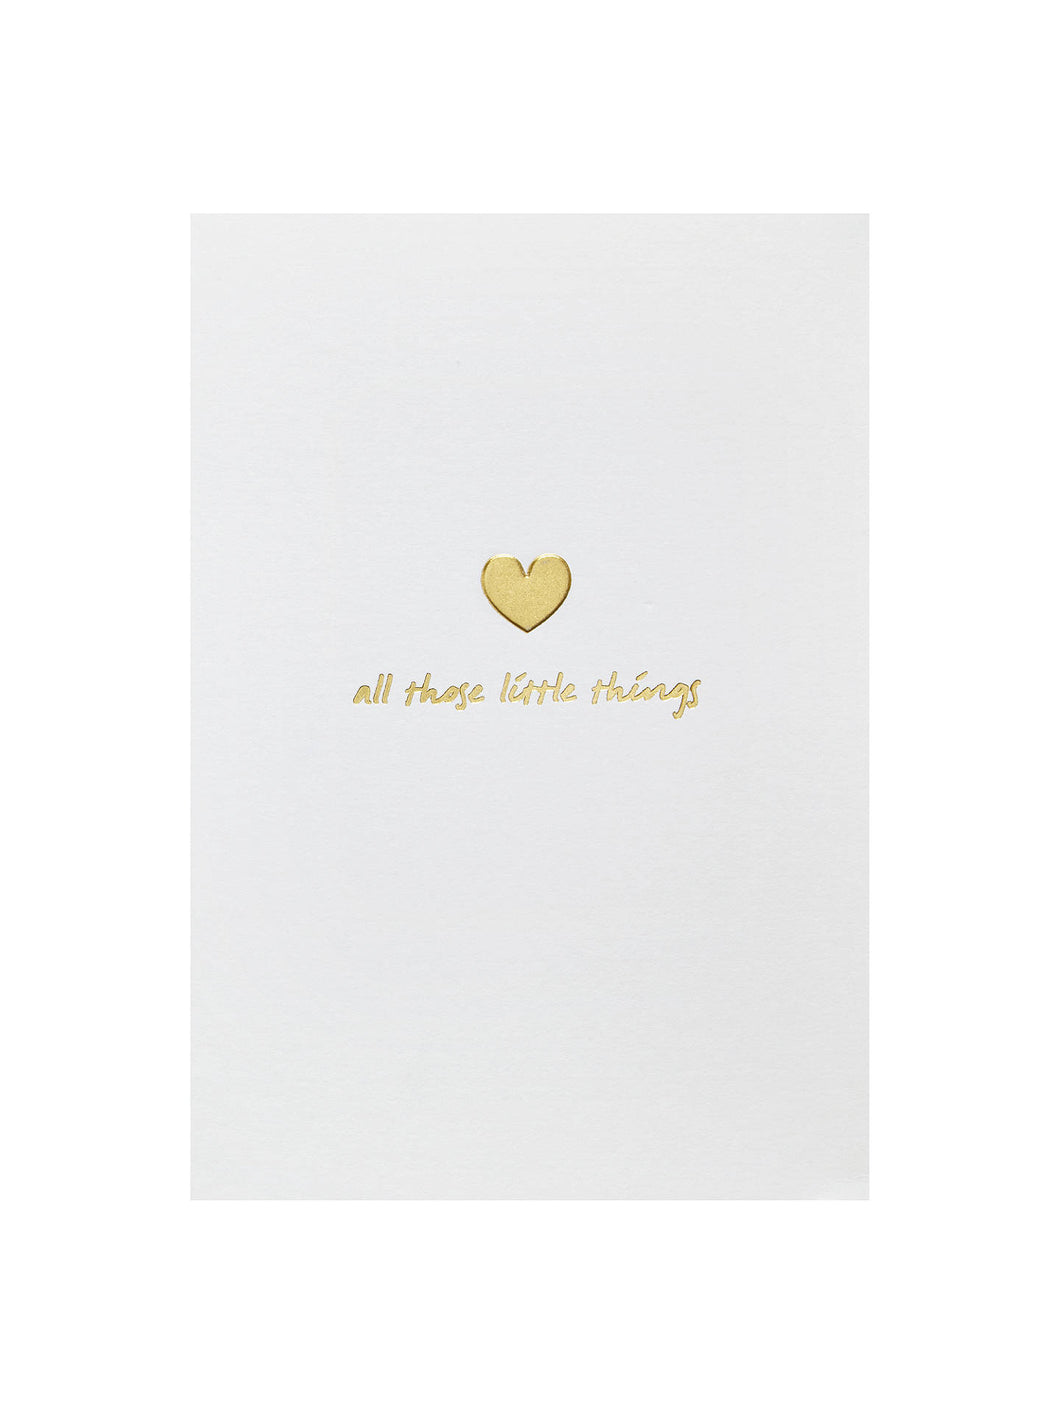 All those little things - Greeting Card